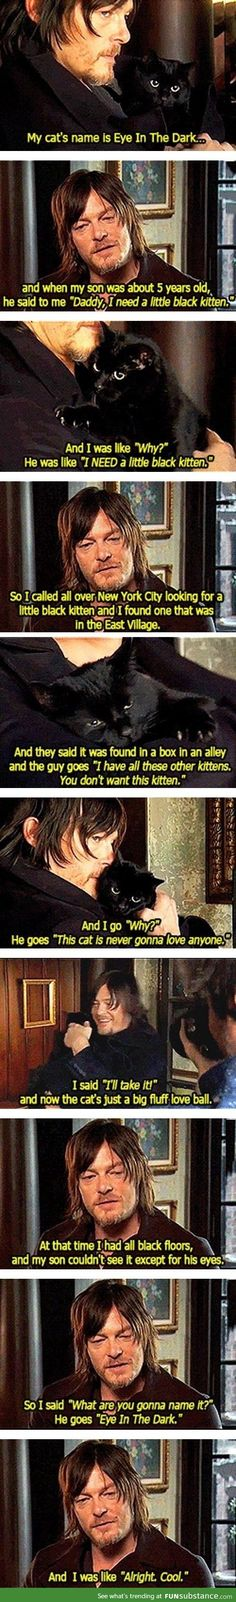 Norman Reedus' cat... Eye In The Dark. Awesome name!